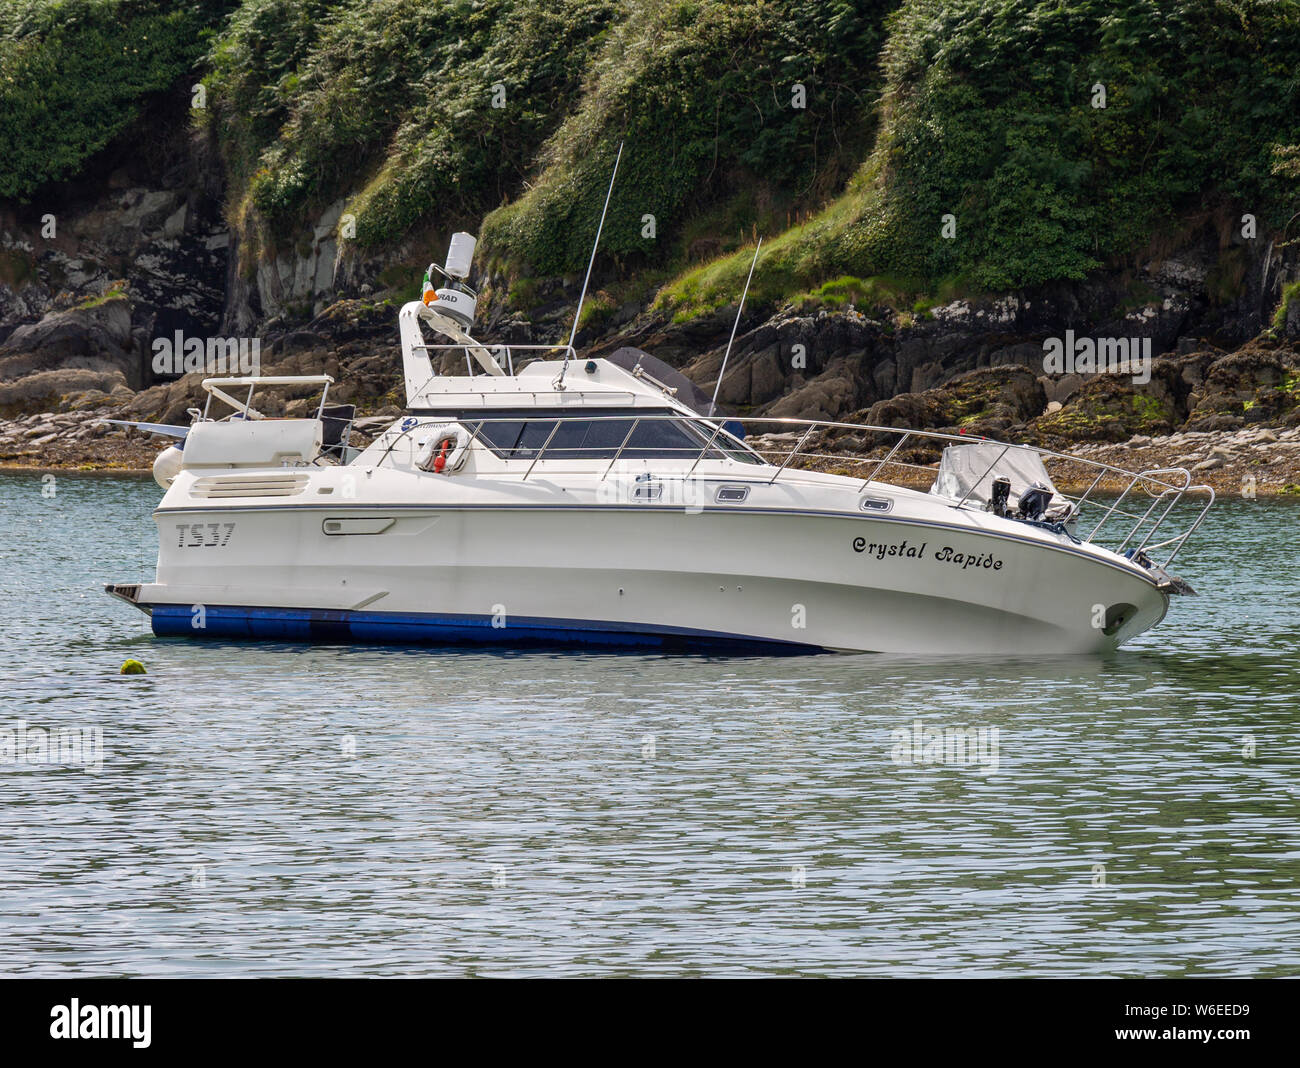 union-hall-west-cork-ireland-1st-august-2019-the-rnli-crew-from-union-hall-today-rescued-a-family-of-4-from-a-sinking-pleasure-cruiser-the-cruiser-crystal-rapide-struck-rocks-near-rabbit-island-and-was-taking-in-water-the-rnli-in-their-rib-the-margaret-bench-of-solihull-rescued-the-family-including-2-children-taking-them-back-to-union-hall-the-craft-was-beached-in-carrigillihy-harbour-credit-aphperspective-alamy-live-news-W6EED9.jpg